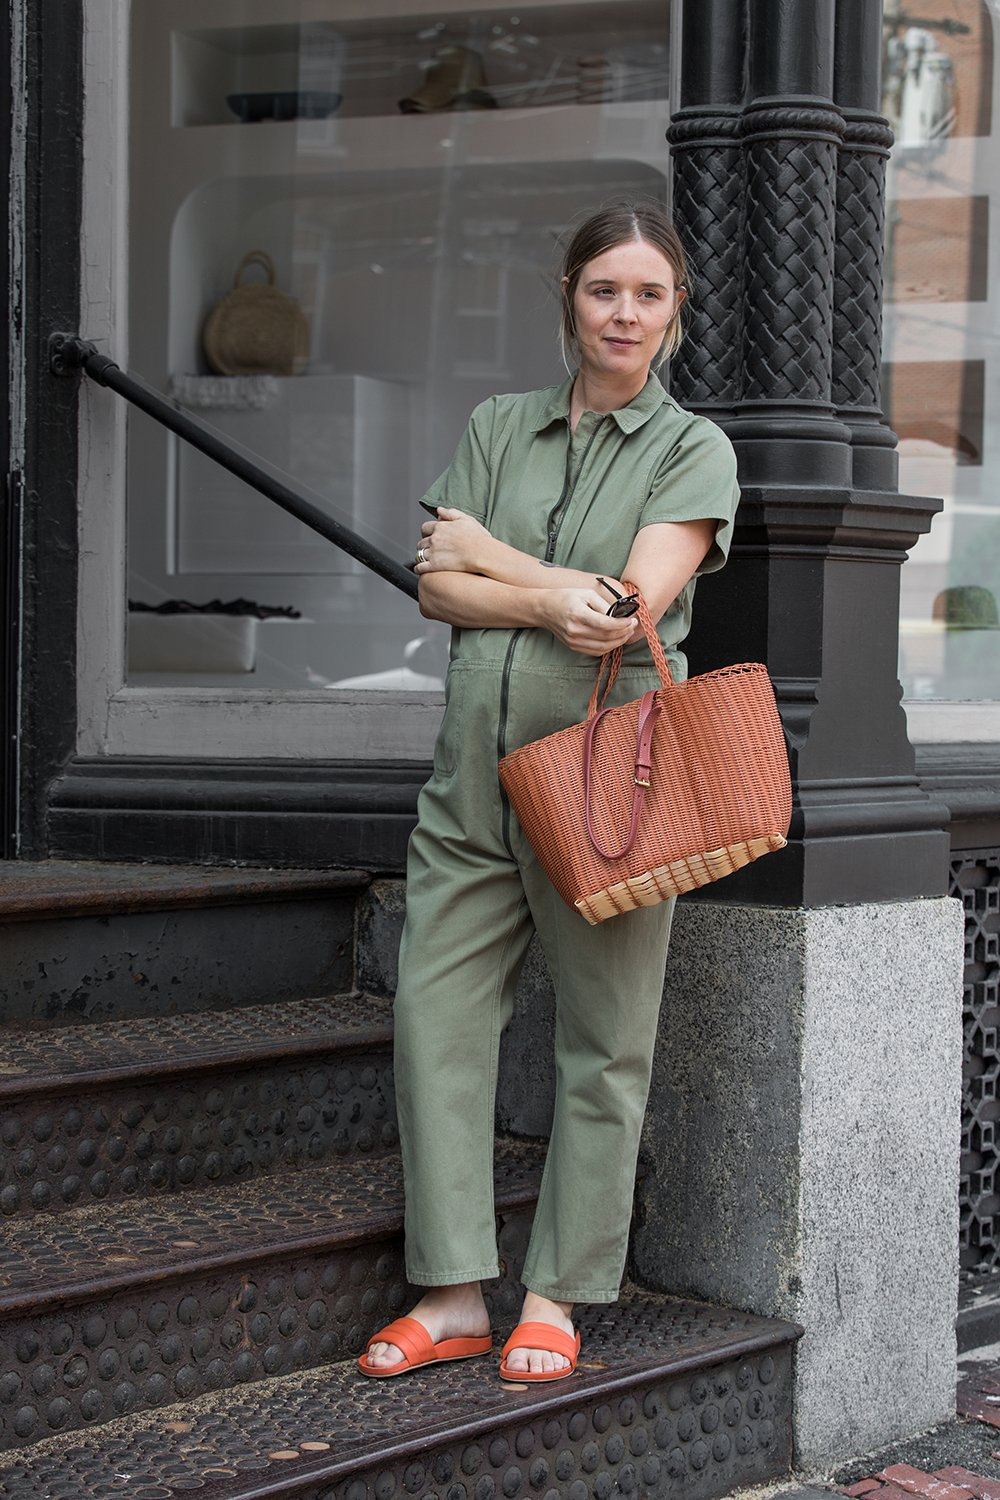 A Week of Outfits: Julie O'Rourke